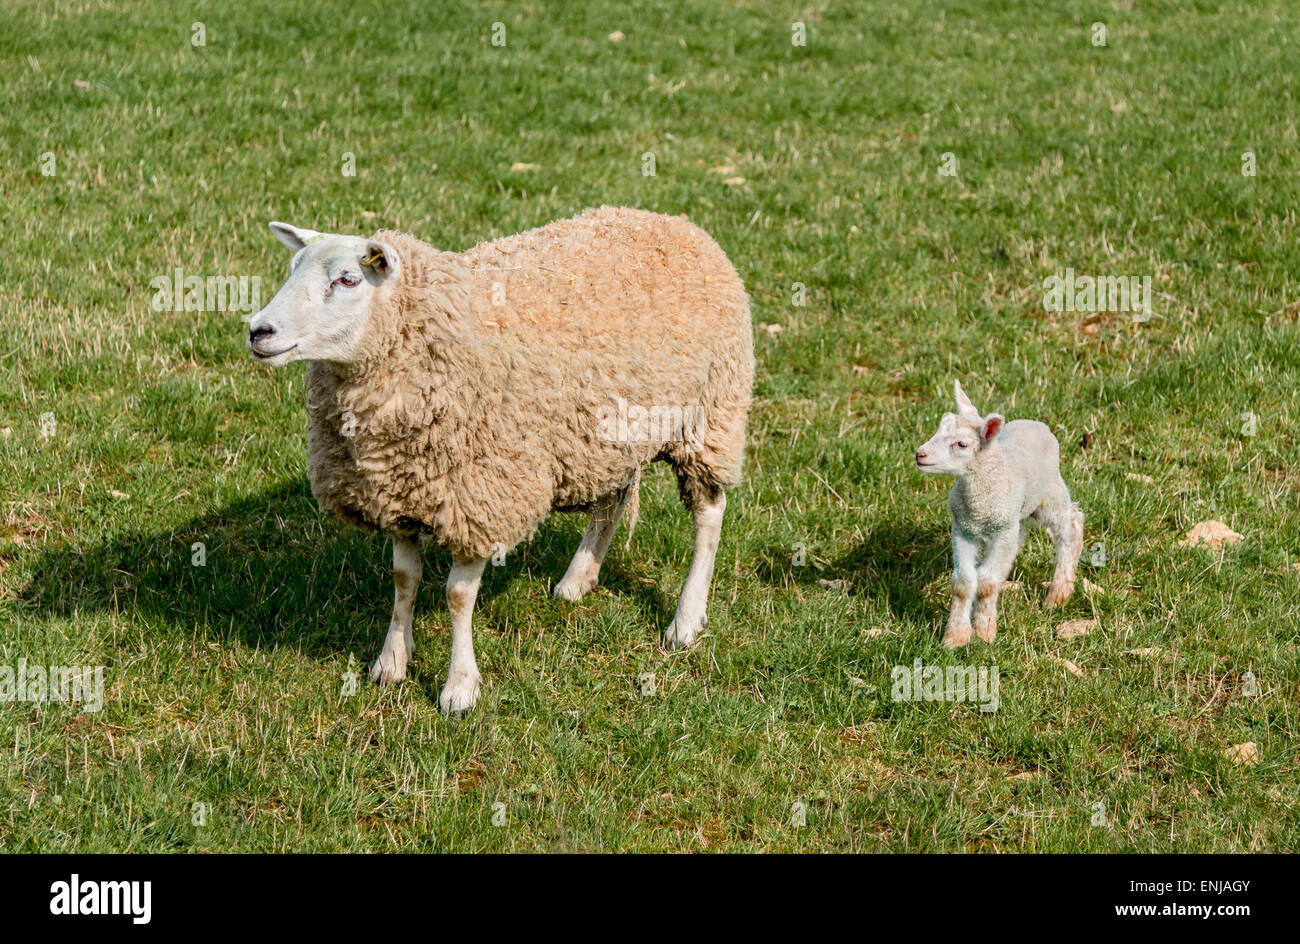 Young spring lamb and mother in grass field - Stock Image